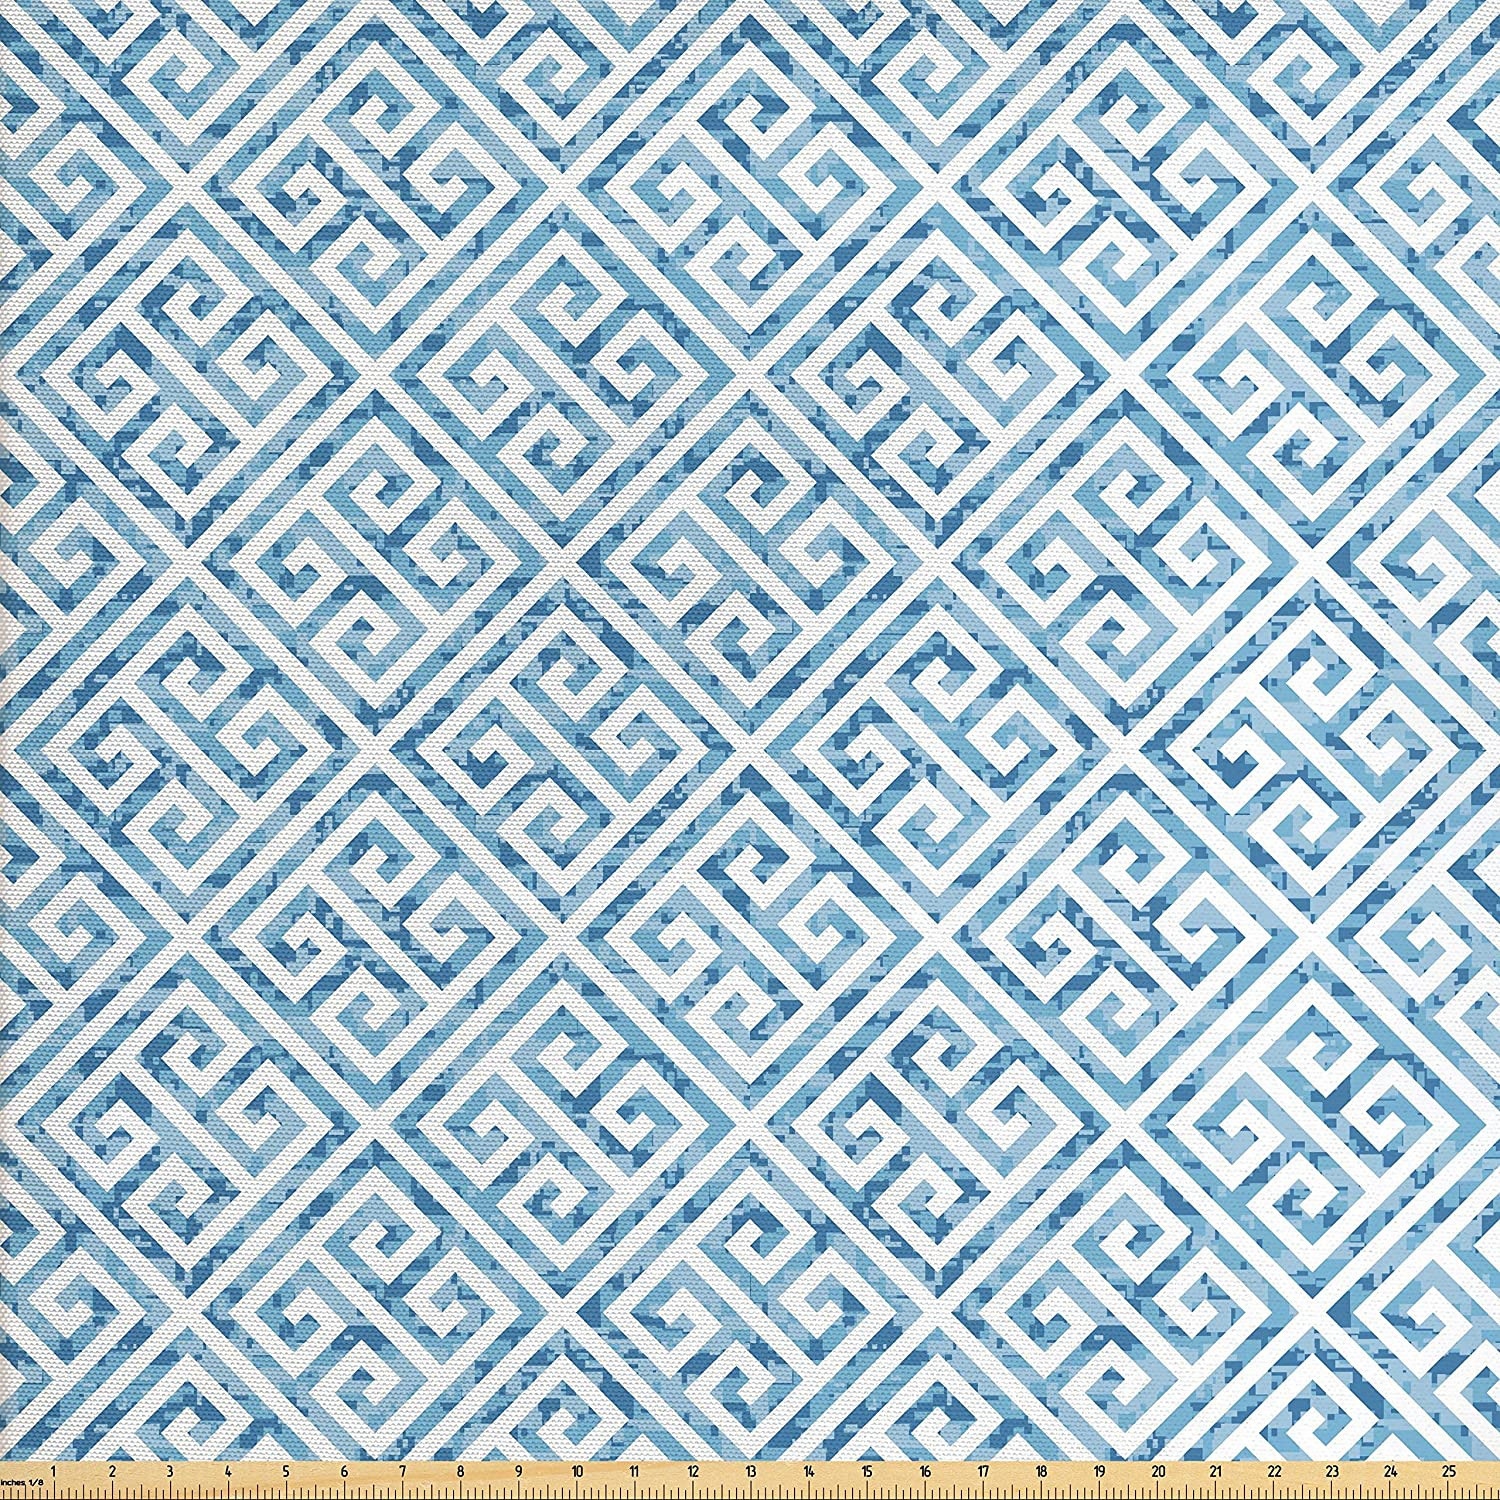 Ambesonne Greek Key Fabric by The Yard, Tile Mosaic Pattern in Blue and White with Antique Meander and Camo Effect, Decorative Fabric for Upholstery and Home Accents, Baby Blue White